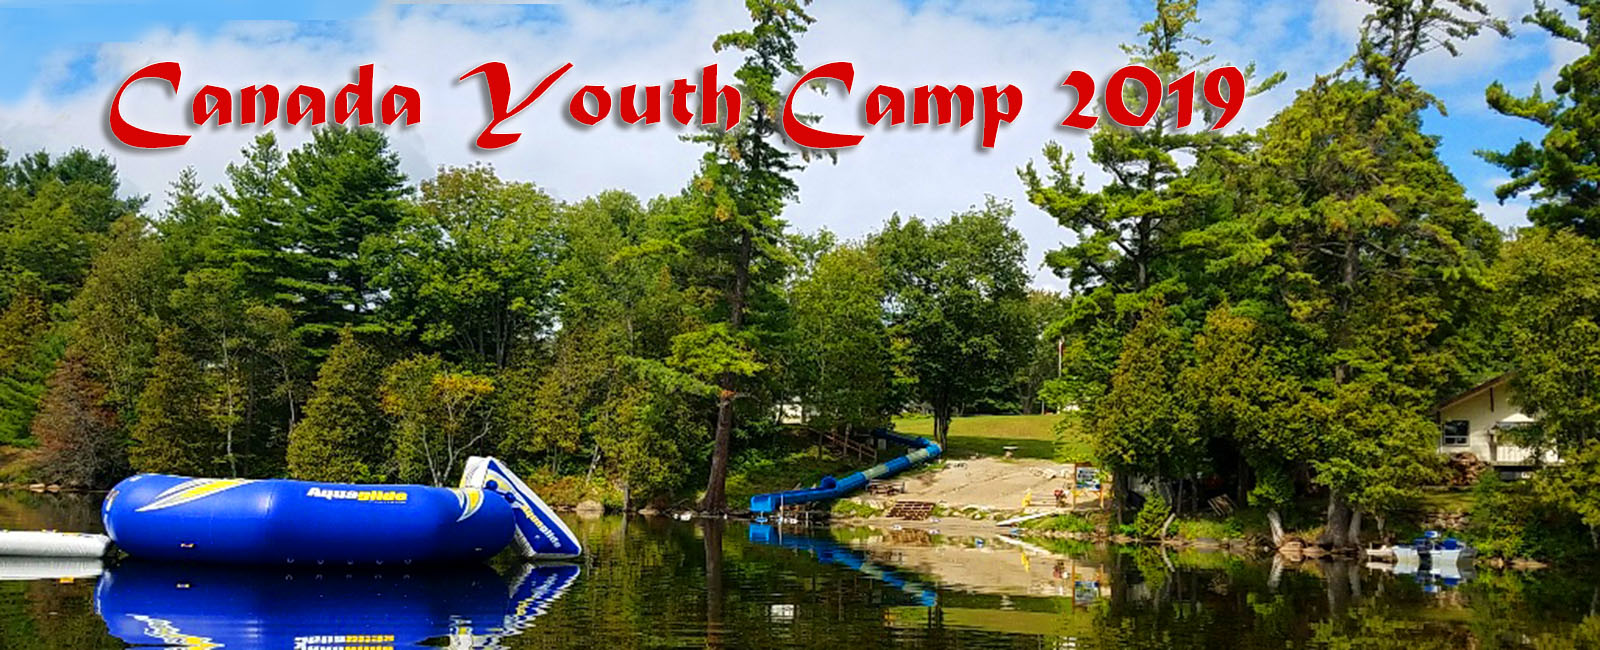 Canada Youth Camp